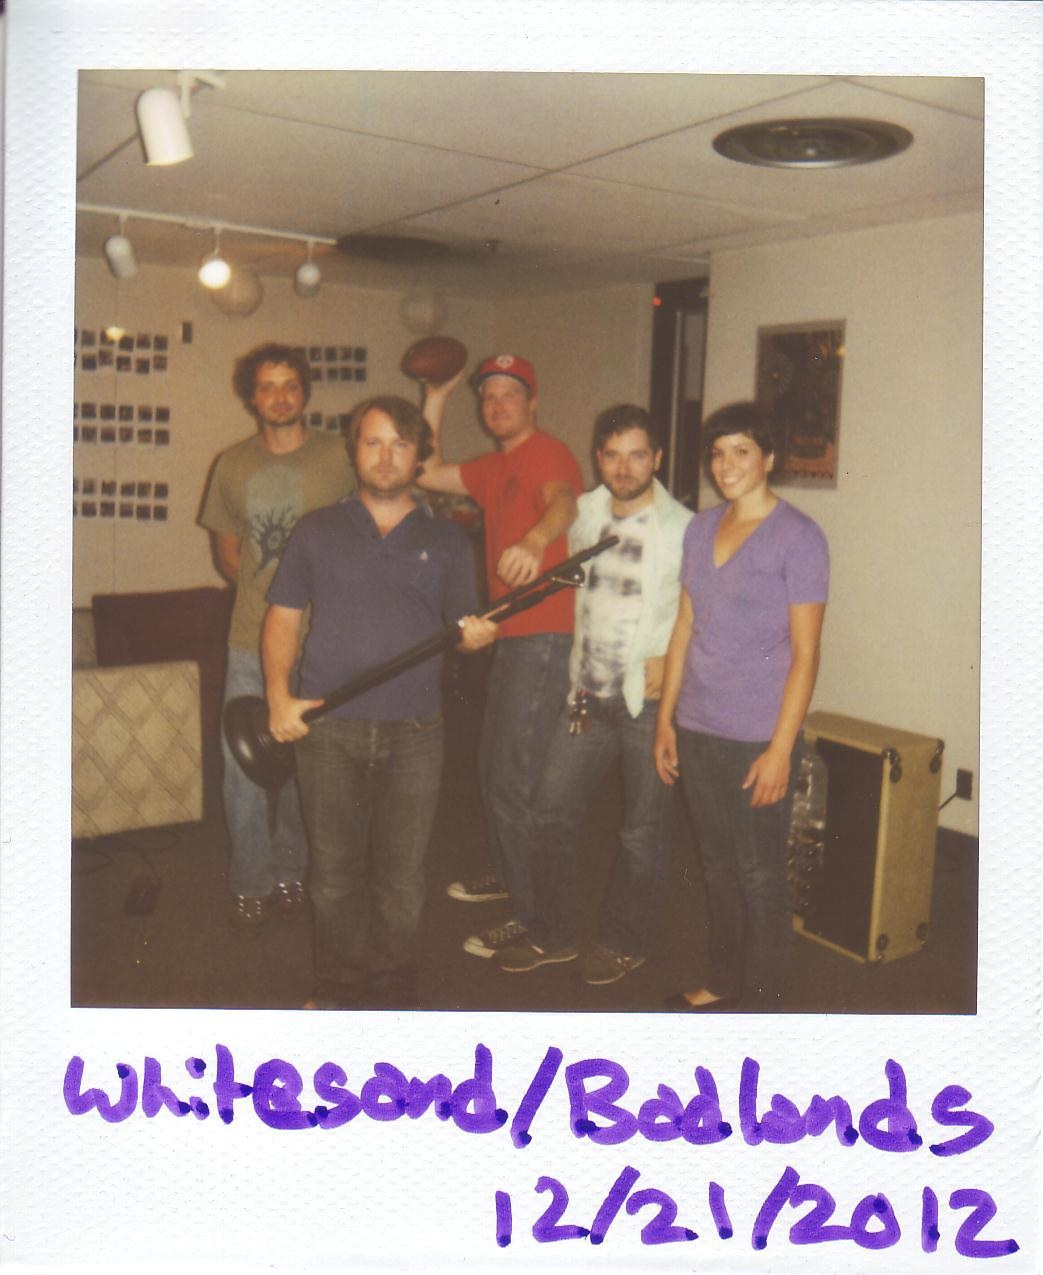 Whitesand/Badlands